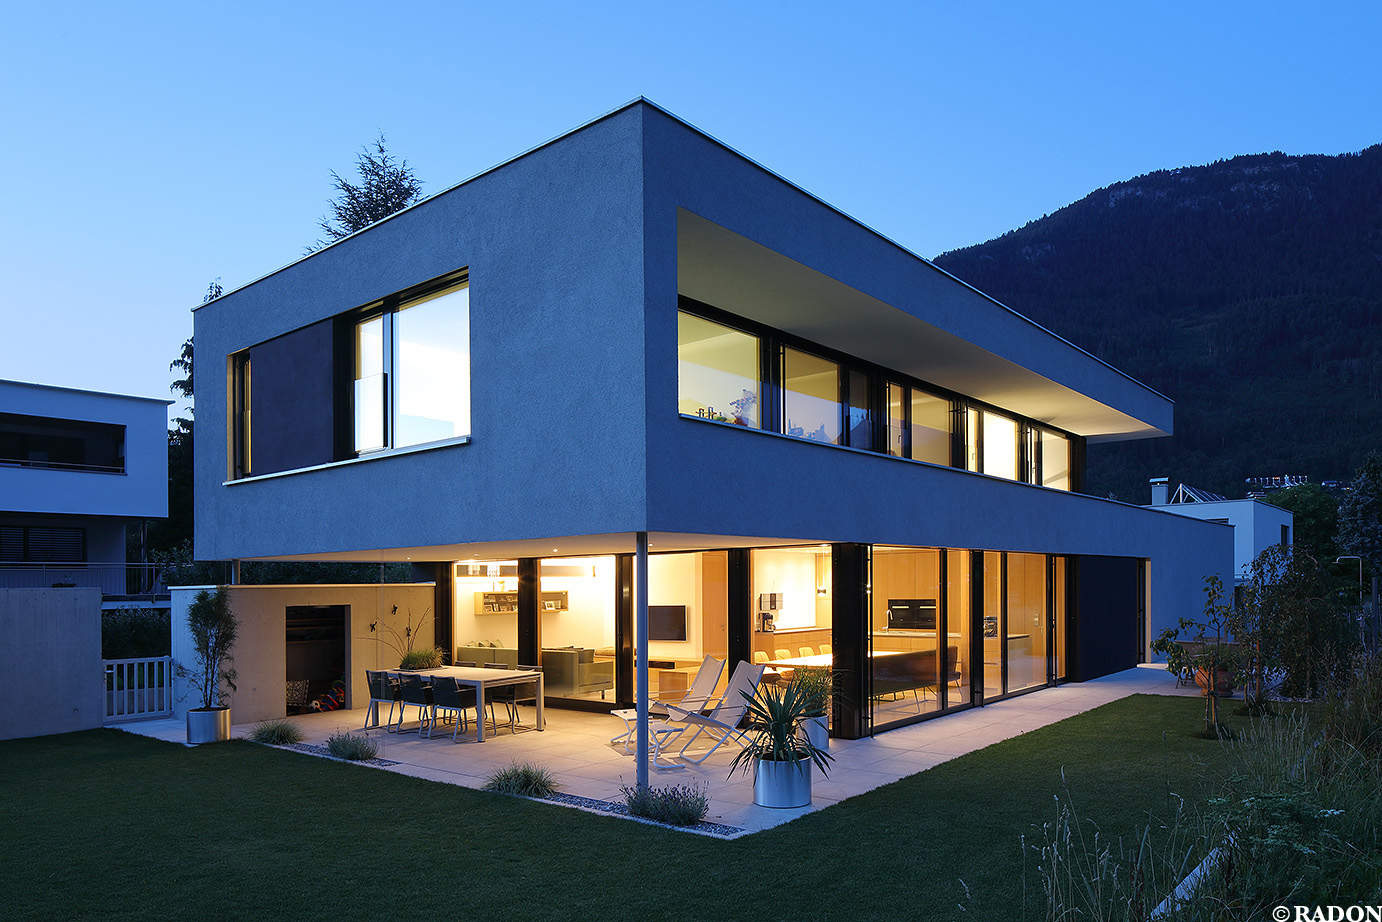 Radon photography norman radon haus u for Architektur haus